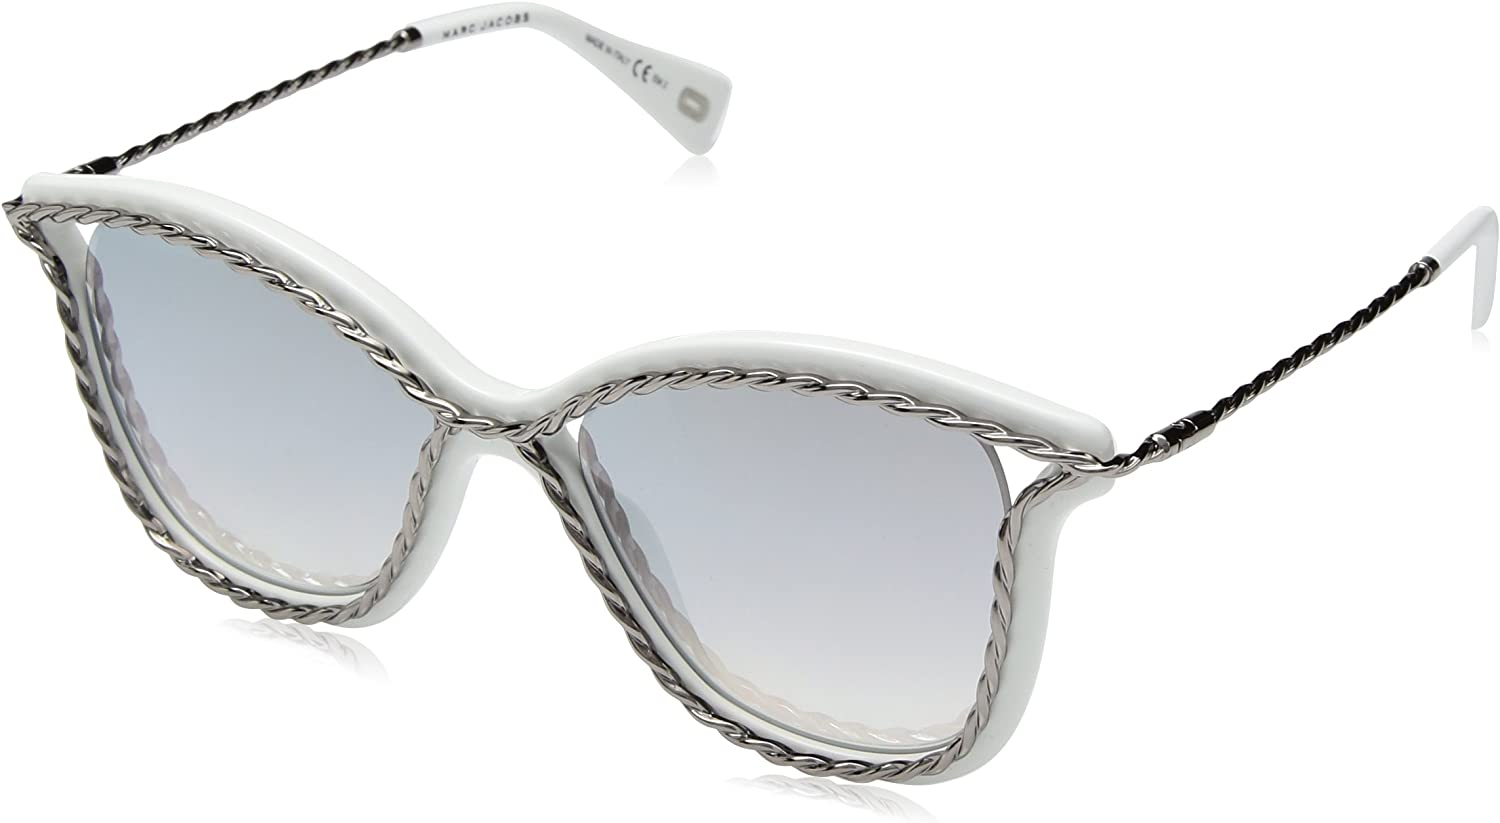 Marc Jacobs Women's Marc160s Cateye Sunglasses WHITE 52 mm